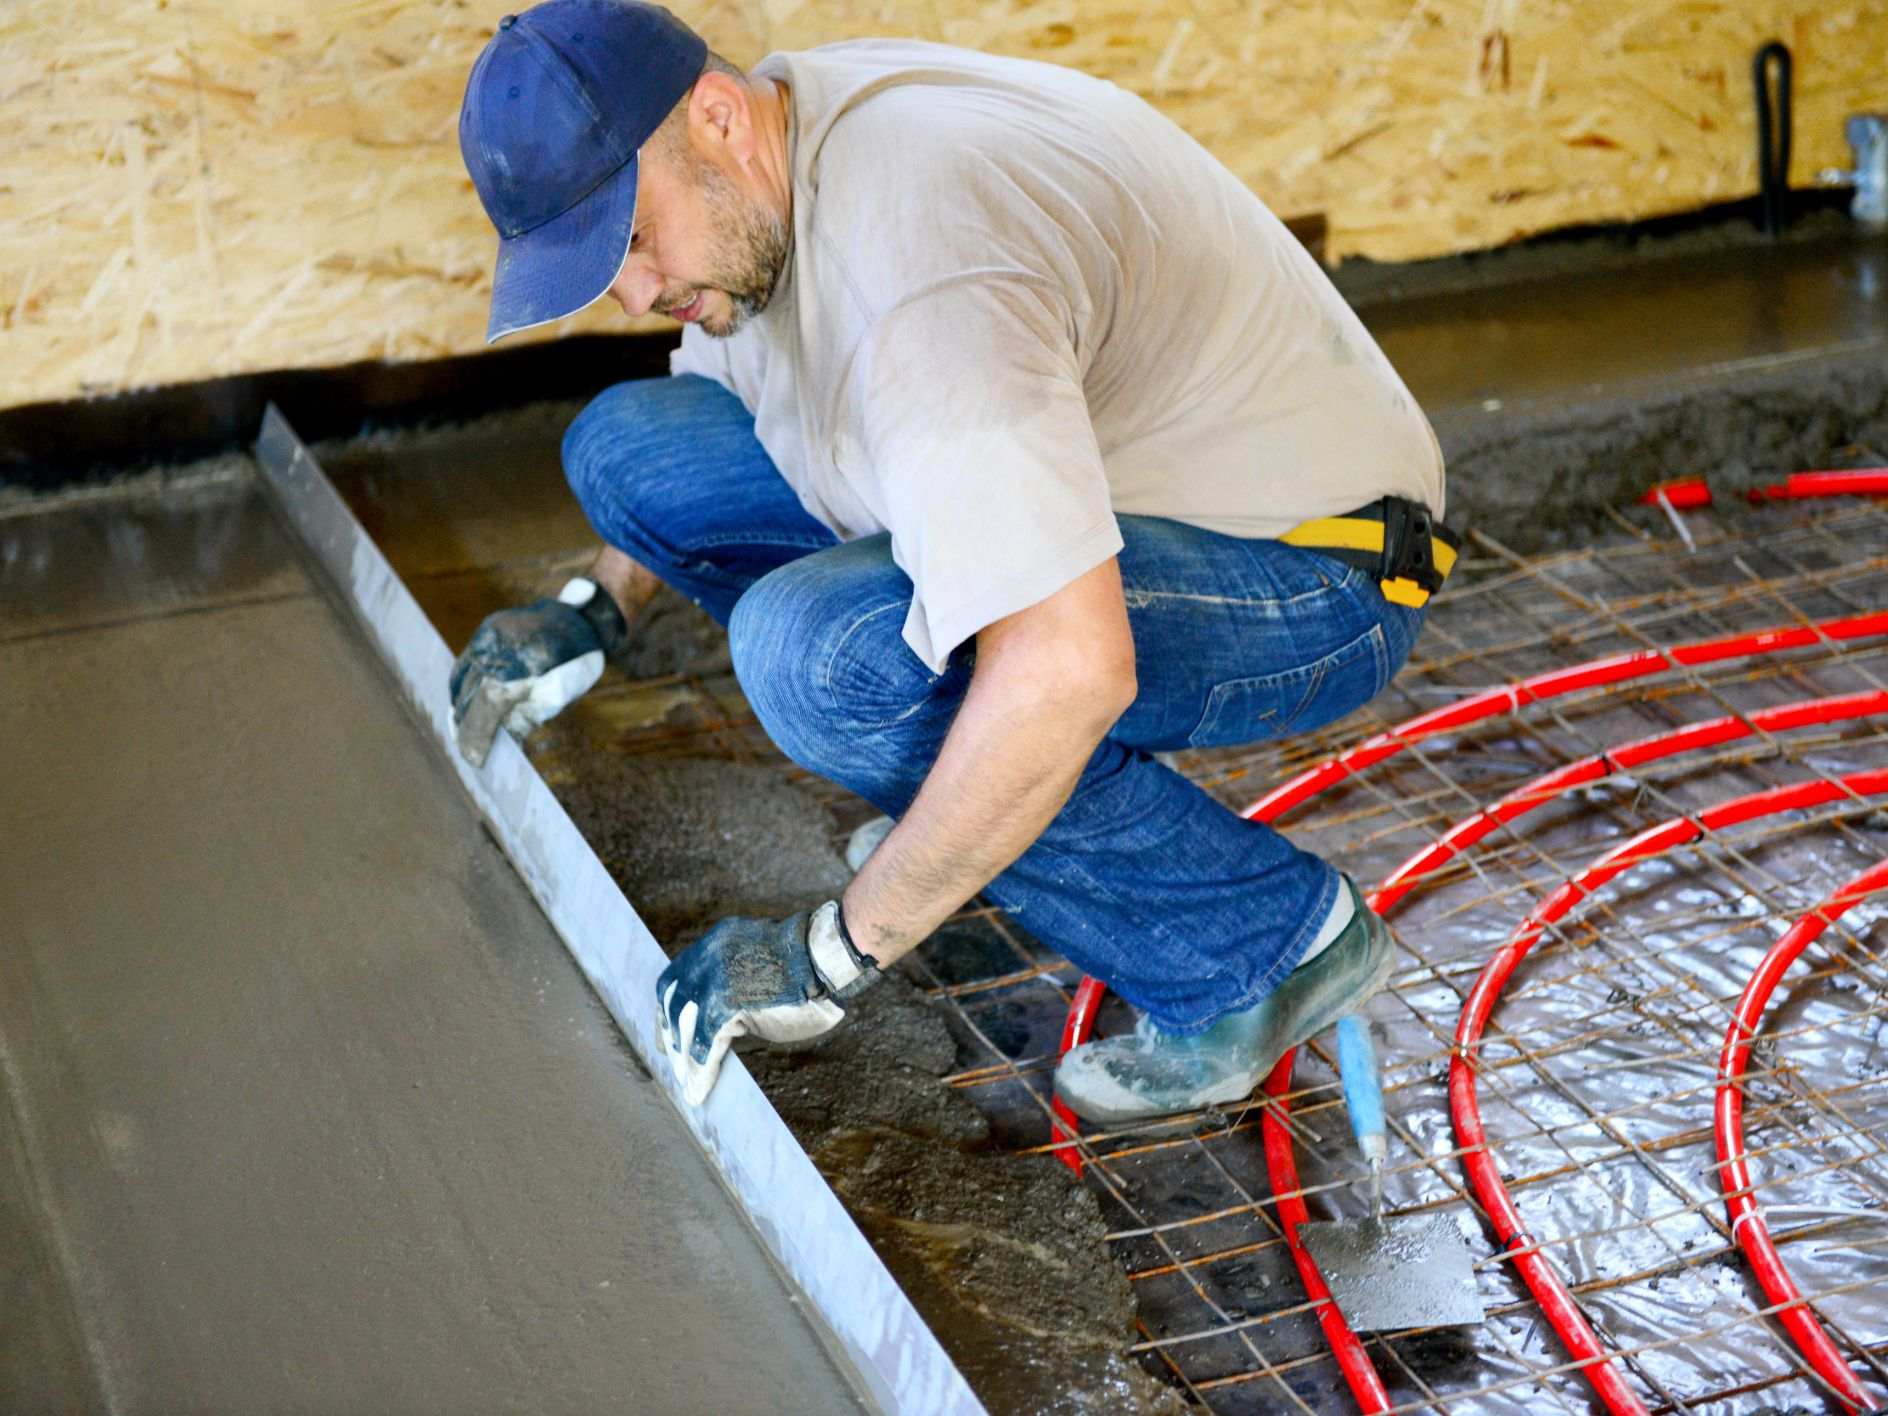 Screeding The Process Of Flattening And Smoothing Wet Concrete